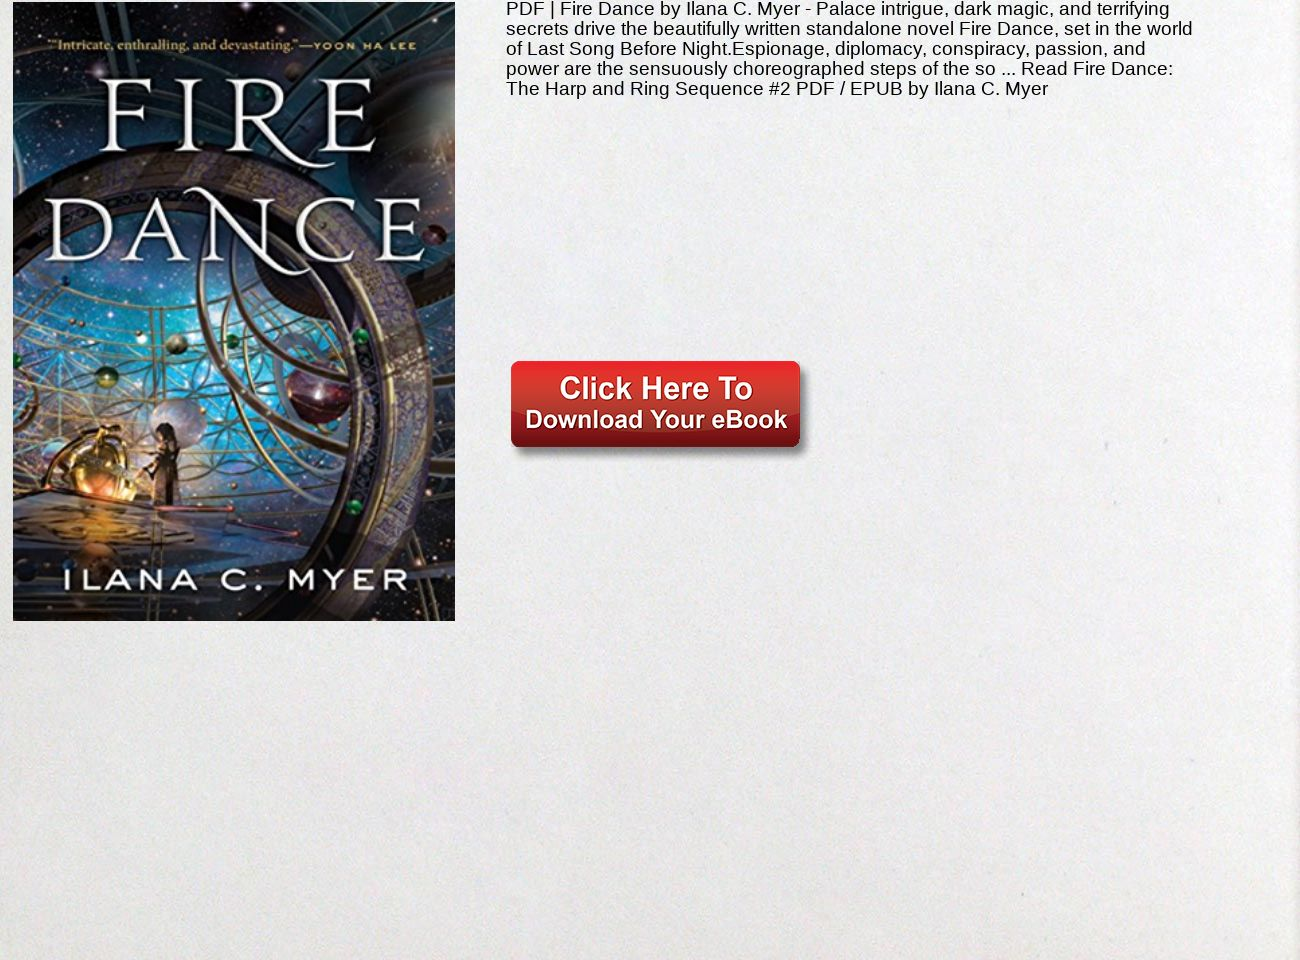 PDF Fire Dance Ilana C  Myer The Harp and Ring Sequence #2